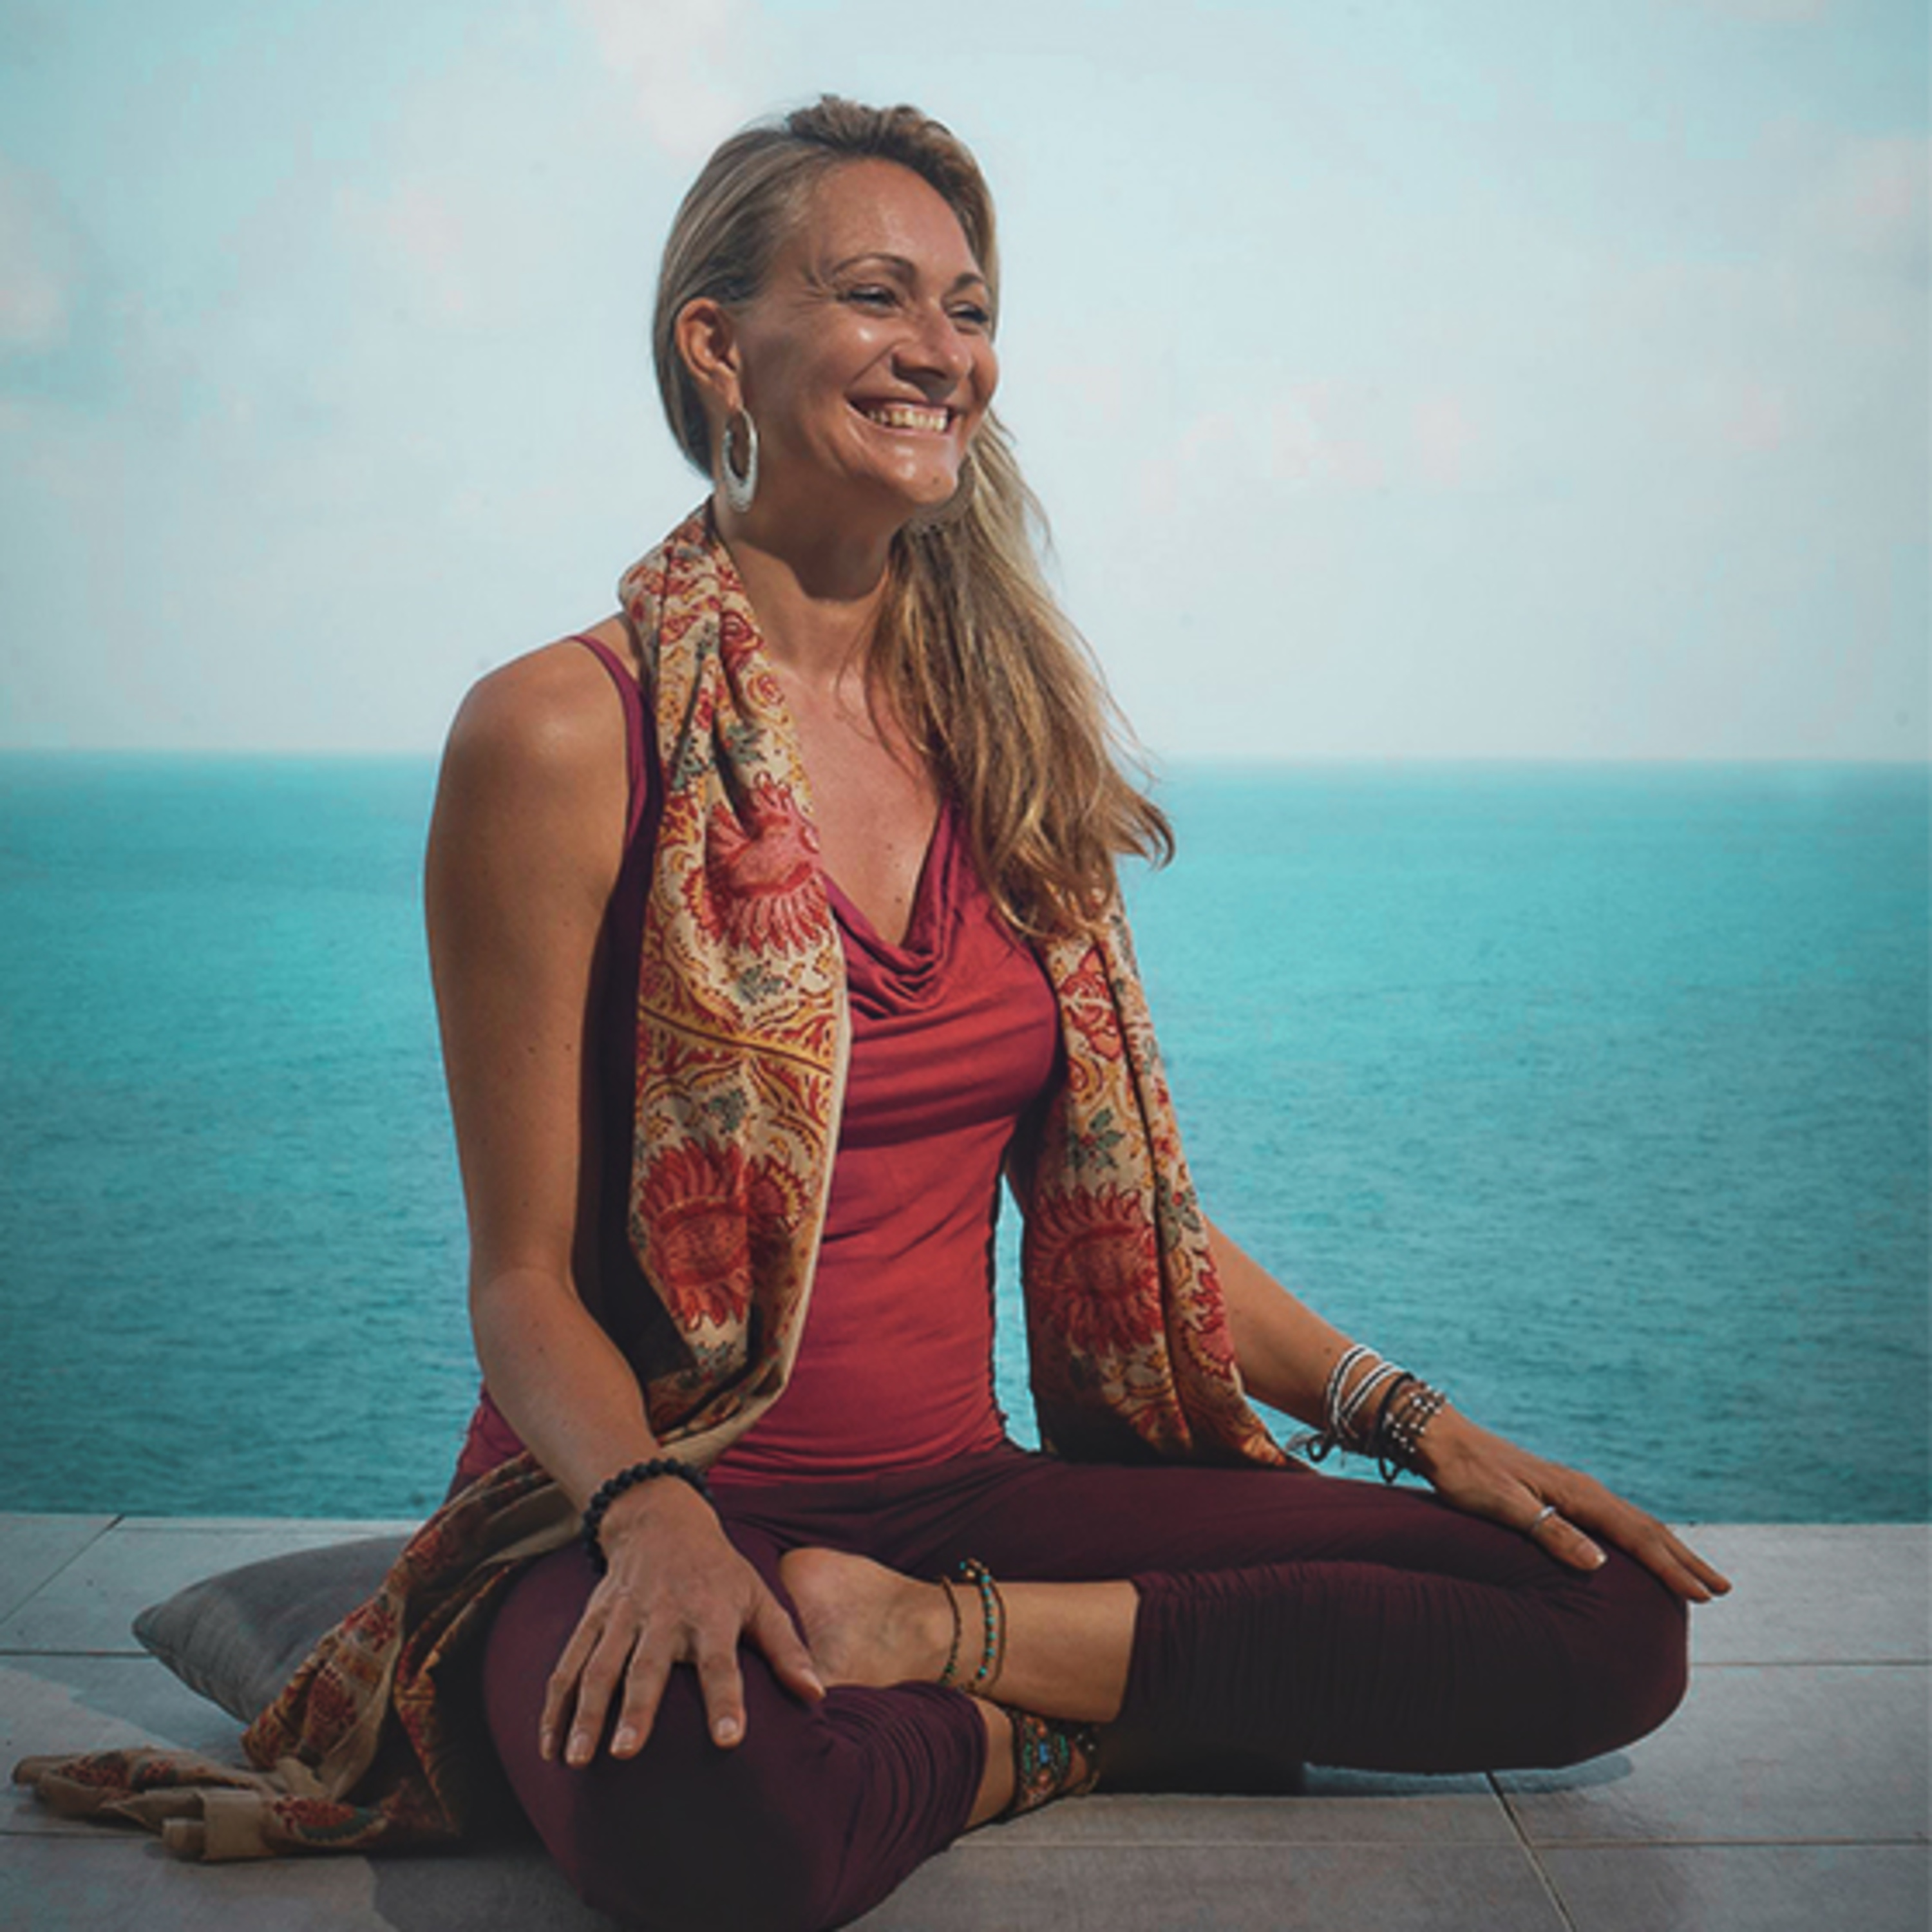 🎧Yoga Nidra, Ayahuasca & The Changing Landscape of the Yoga World - Interview with Simone Mackay